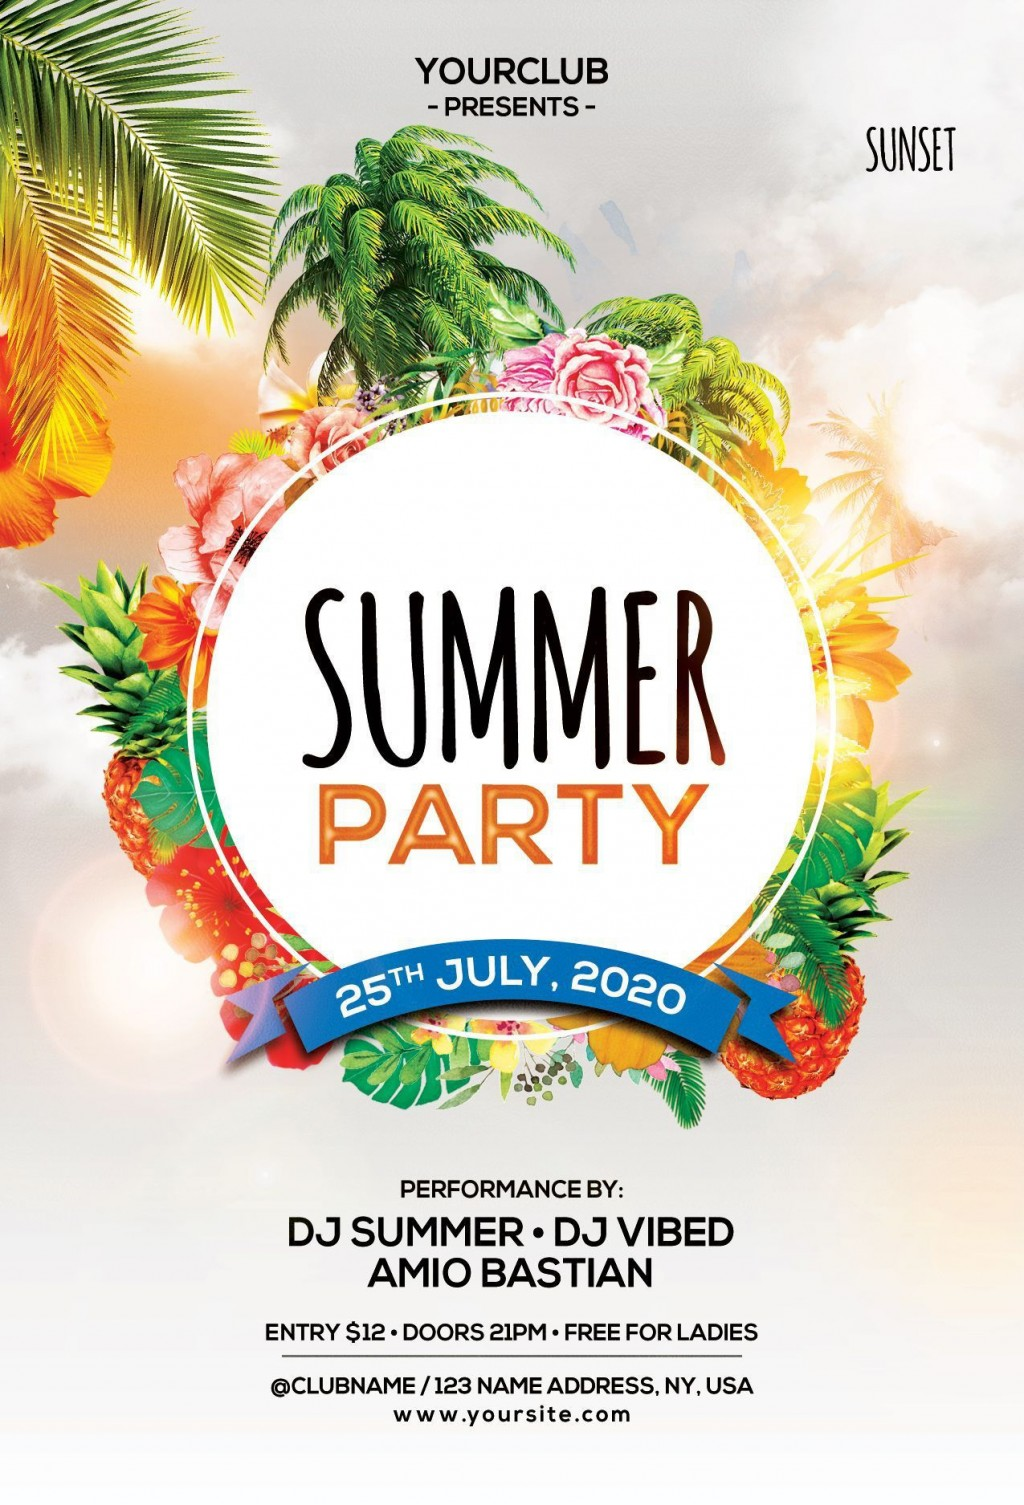 002 Astounding Summer Party Flyer Template Free Download Highest Clarity Large